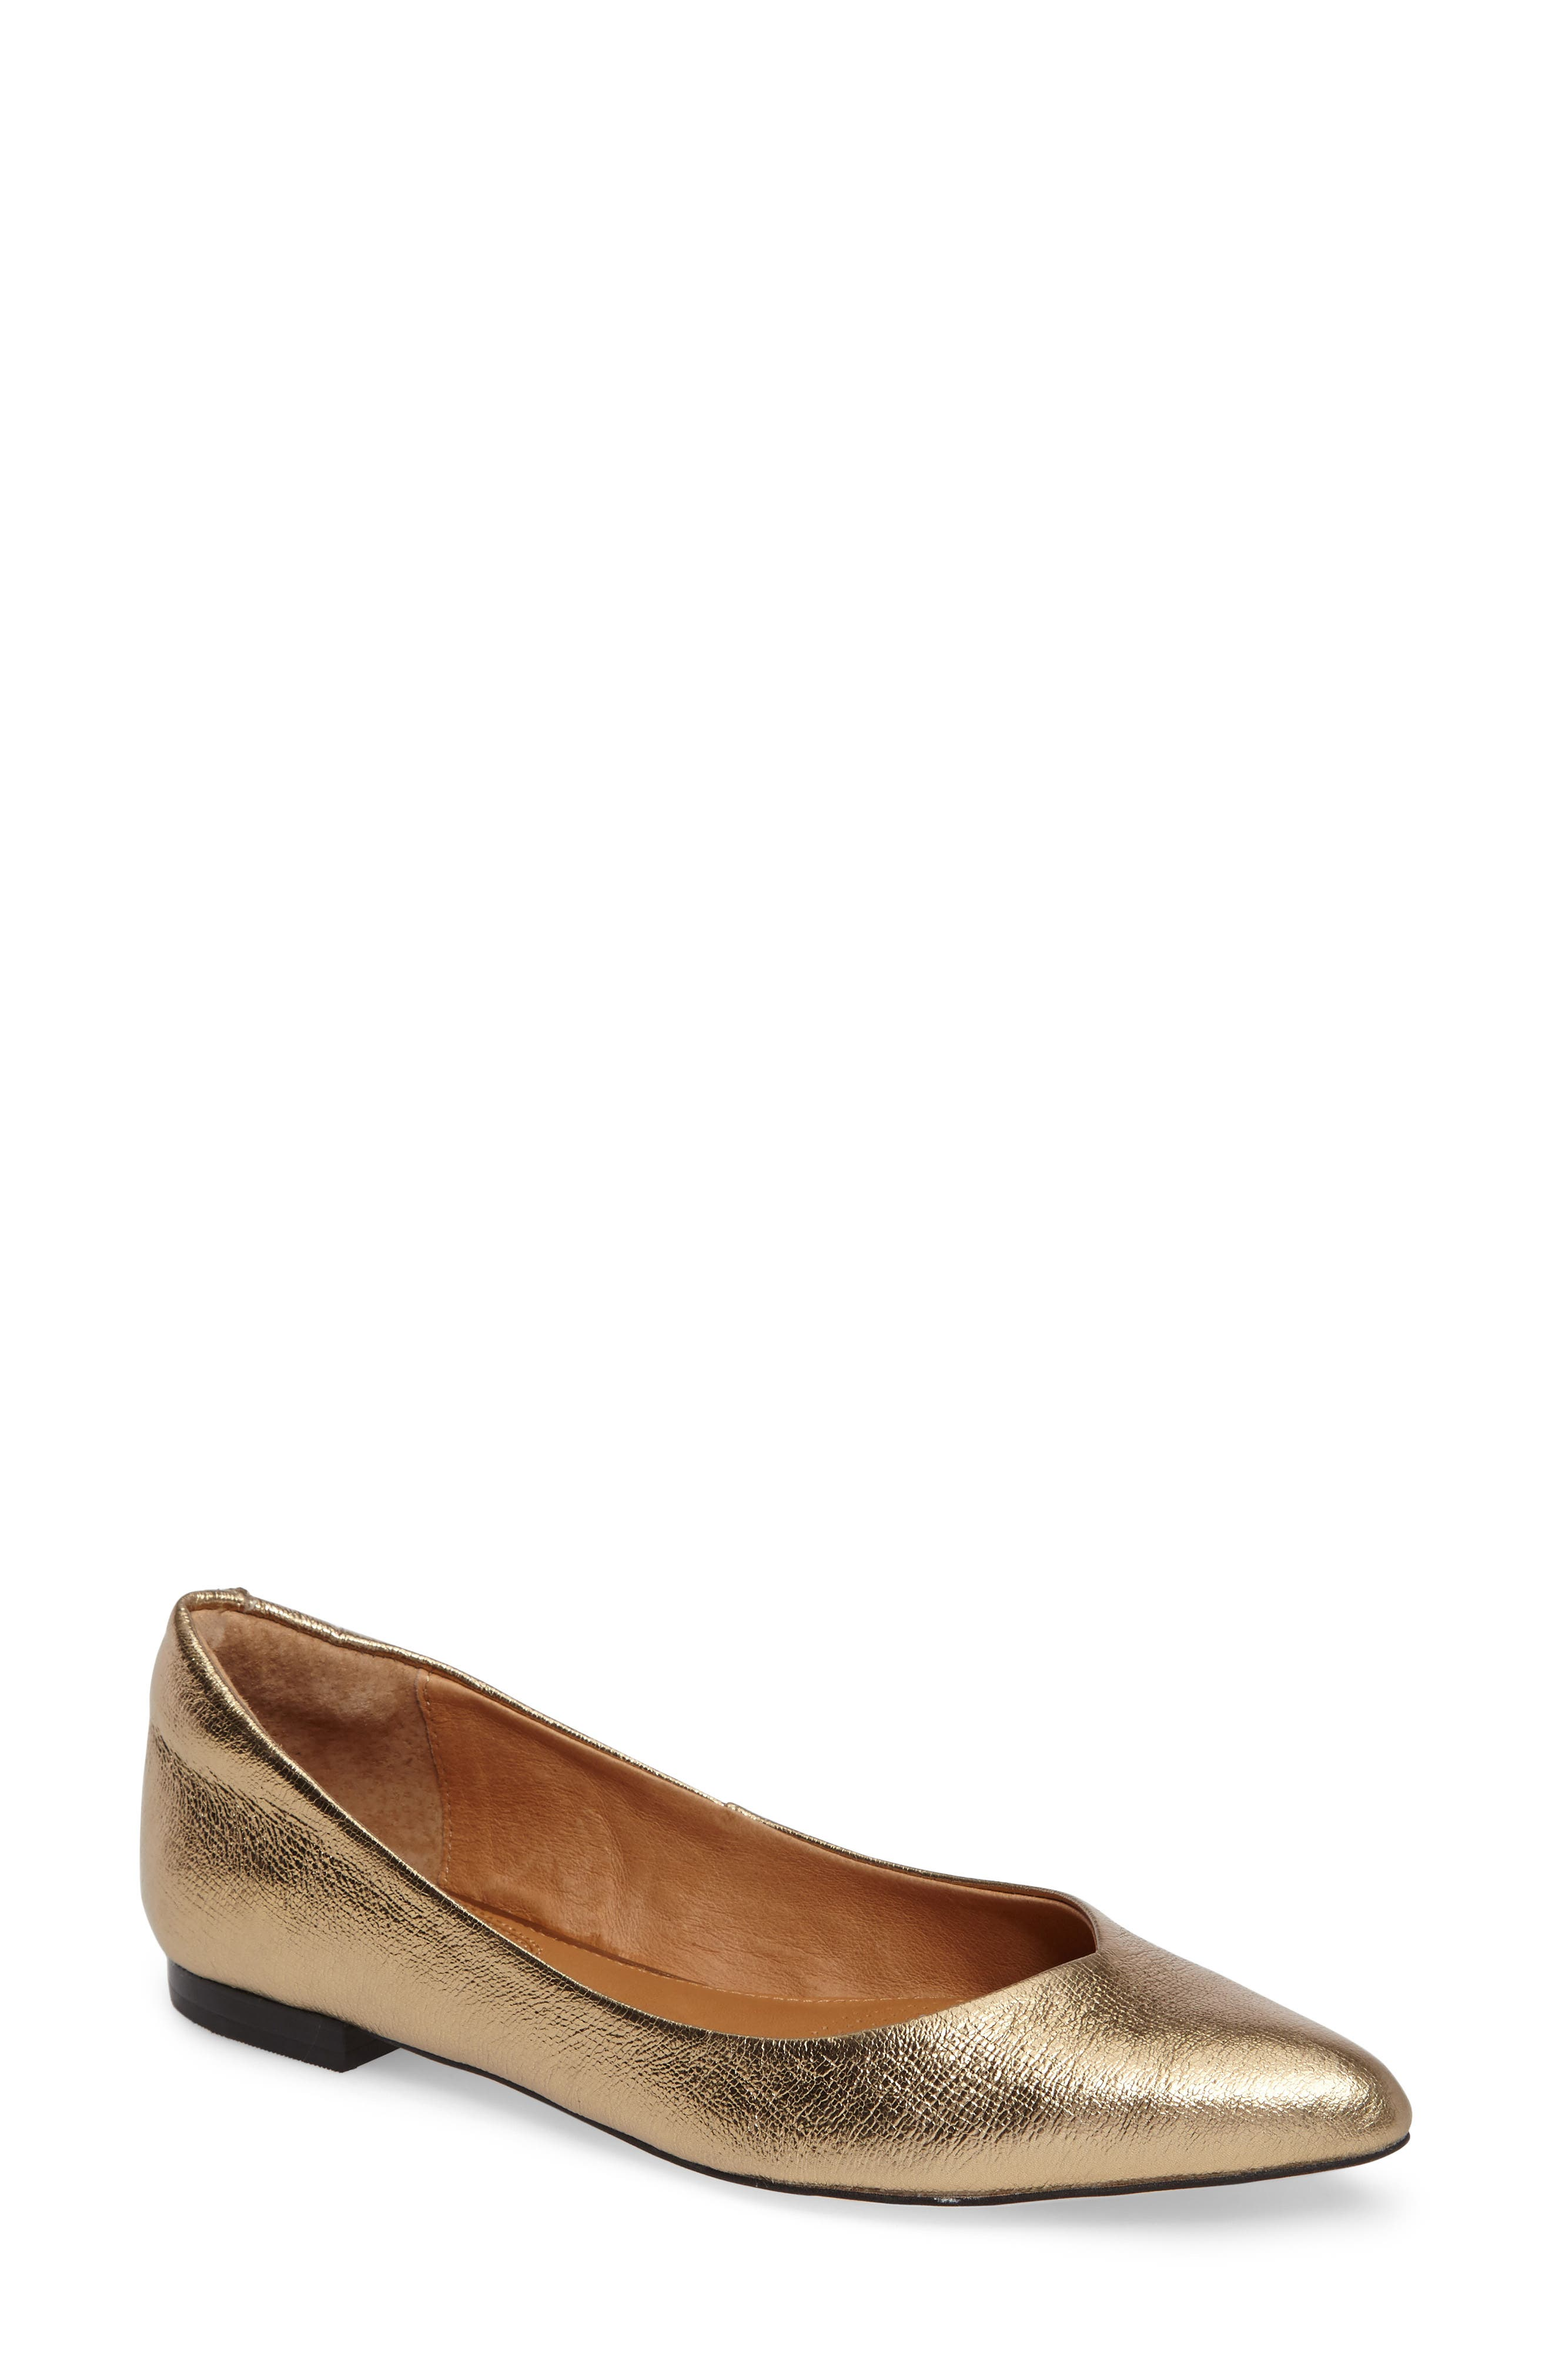 Main Image - Corso Como Julia Pointy Toe Flat (Women)